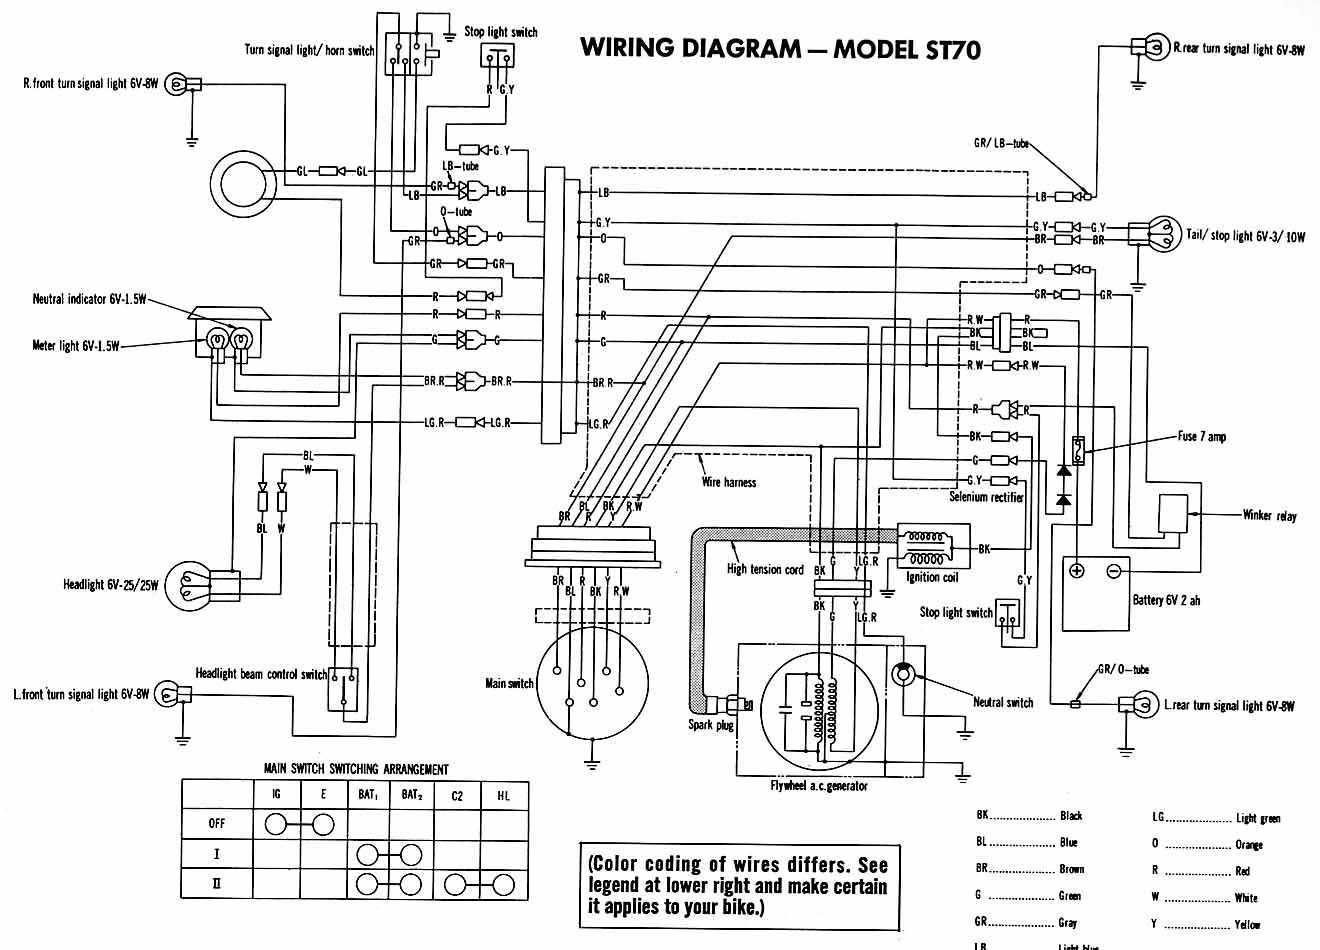 1972 Honda Ct90 Wiring Diagrams Detailed S65 Diagram 1978 Ct70 Trusted U2022 1977 125cc Electrical